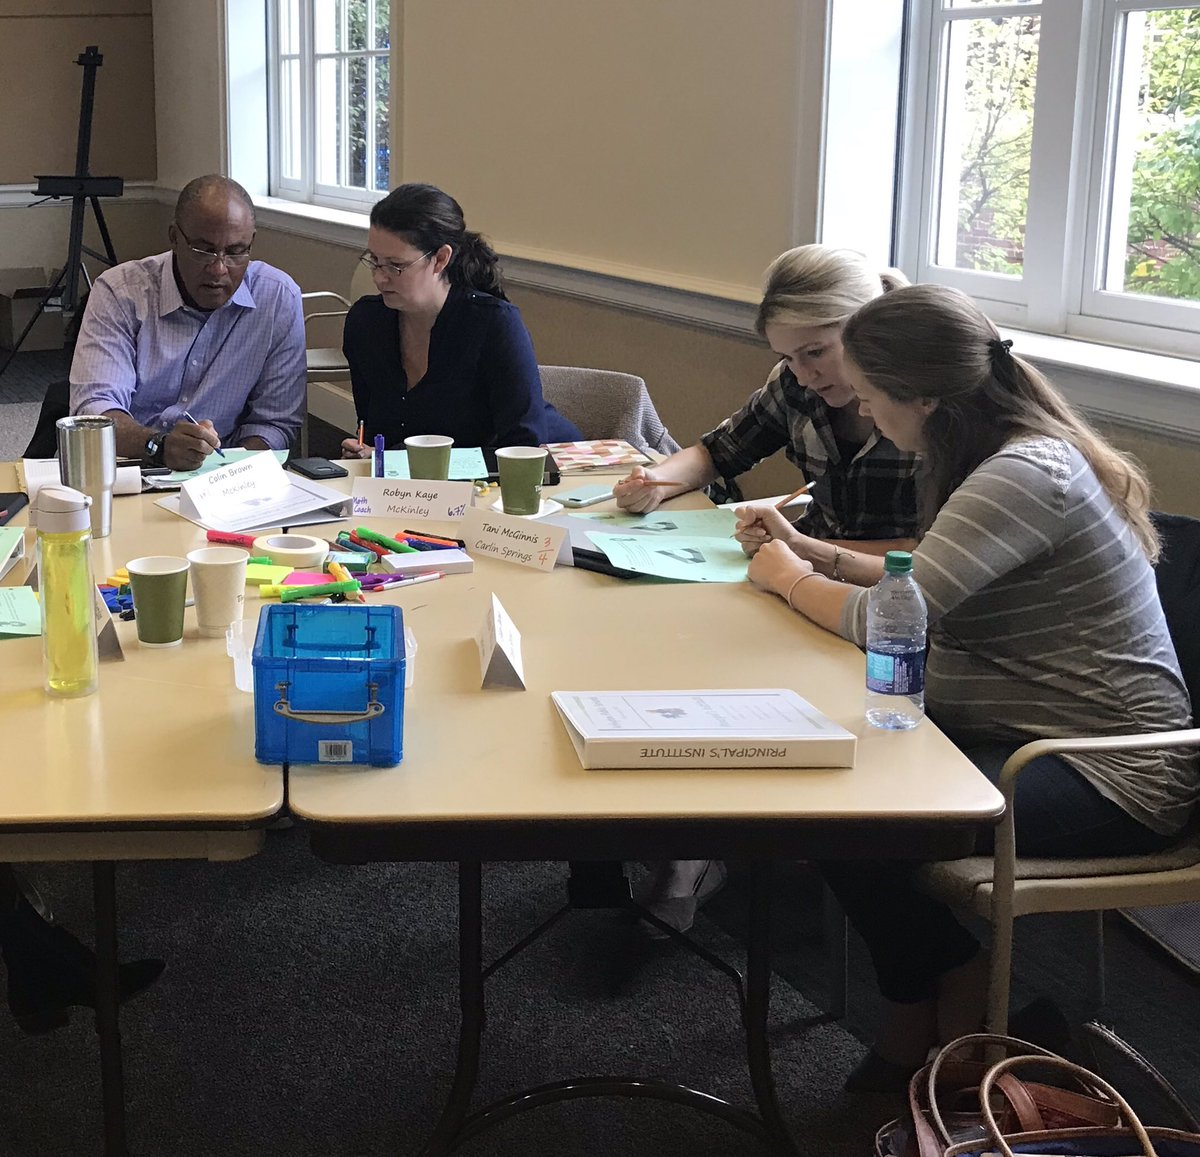 Another great pic of administrators &amp; math coaches collaborating to solve a math problem from the Principals Institute today! <a target='_blank' href='http://twitter.com/APSMcKCardinals'>@APSMcKCardinals</a> <a target='_blank' href='http://twitter.com/apscspr'>@apscspr</a> <a target='_blank' href='https://t.co/2YQXvBwbIZ'>https://t.co/2YQXvBwbIZ</a>